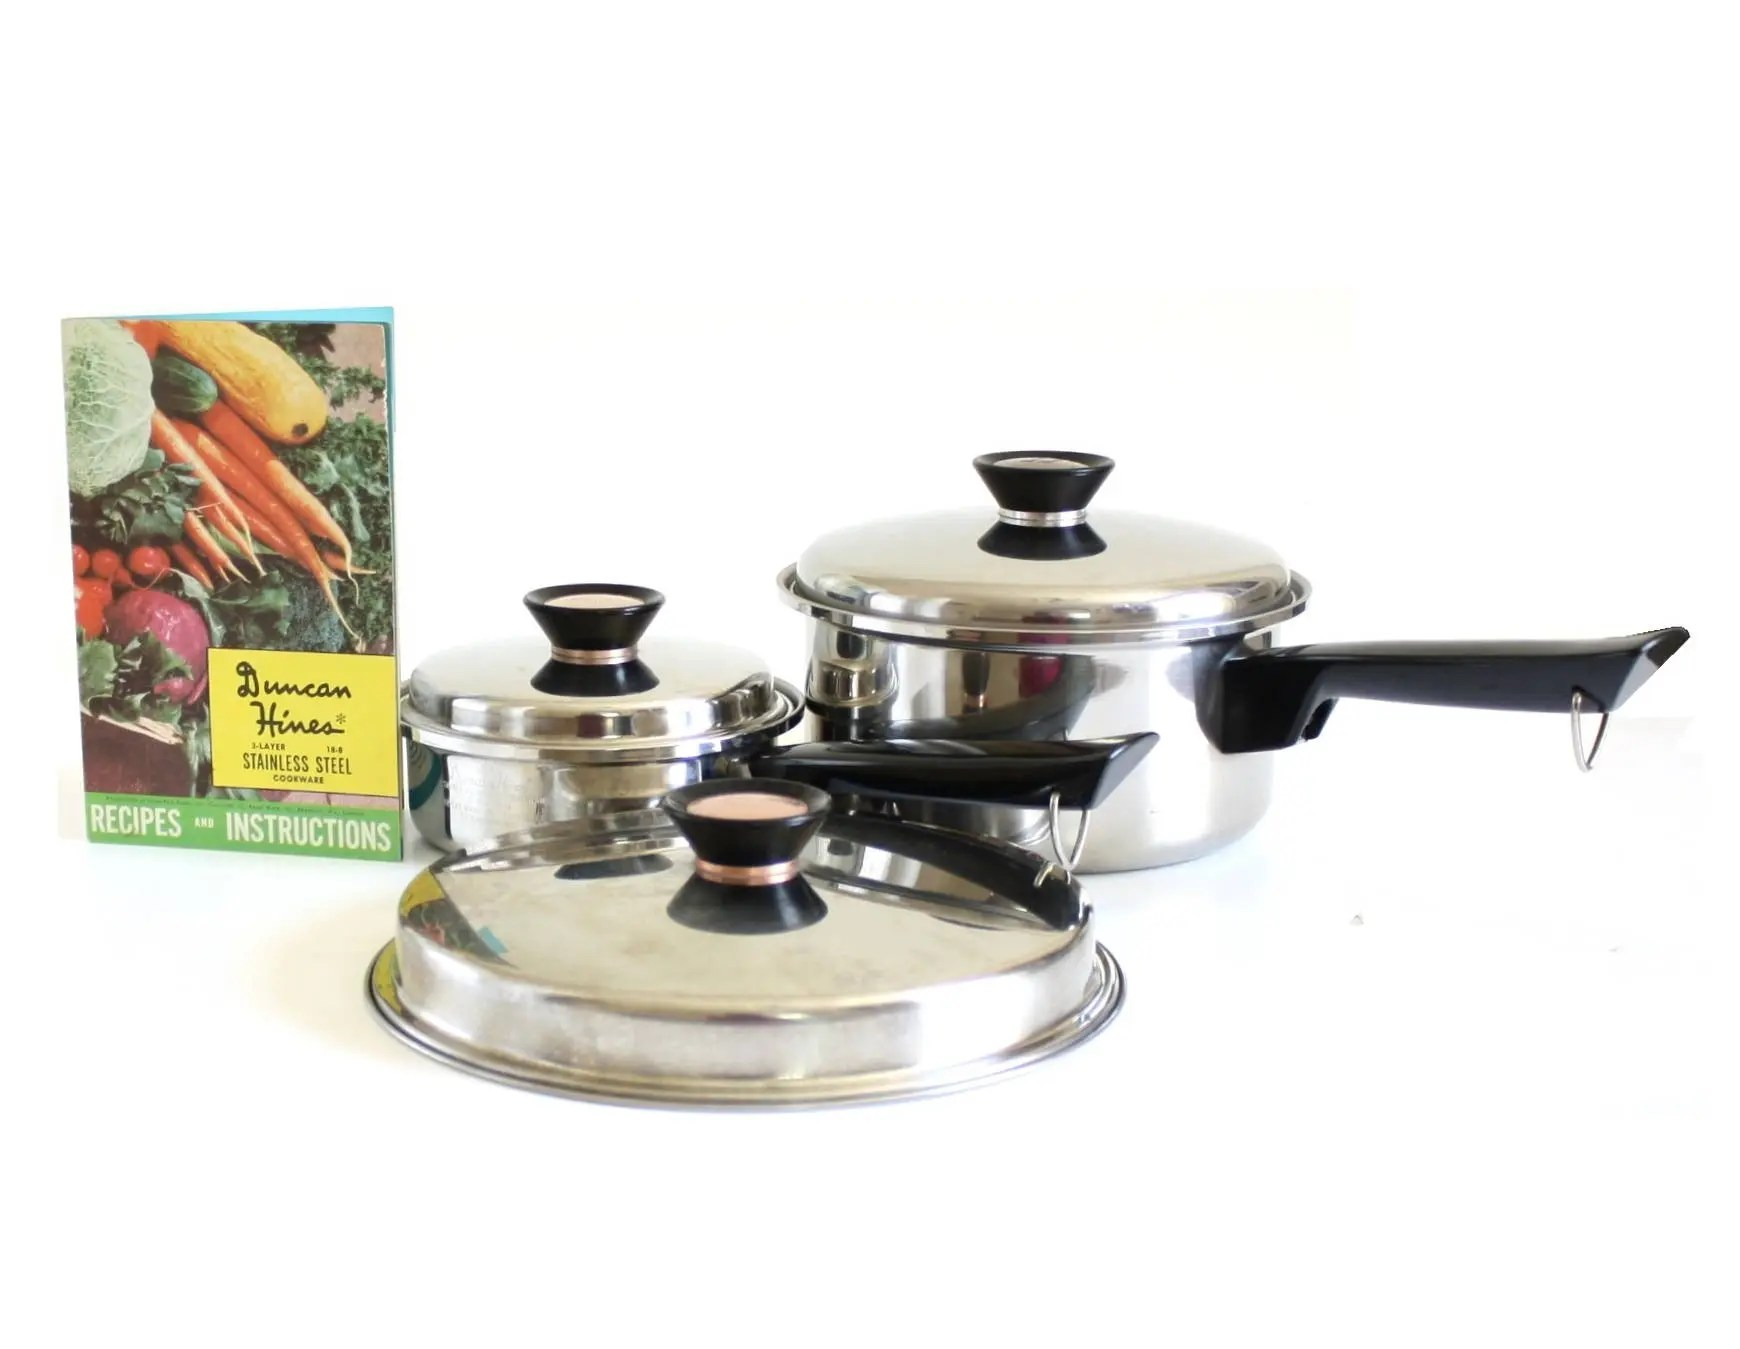 kitchen pots and pans cabinet plans duncan hines saucepan or skillet lid cookware 3 etsy image 0